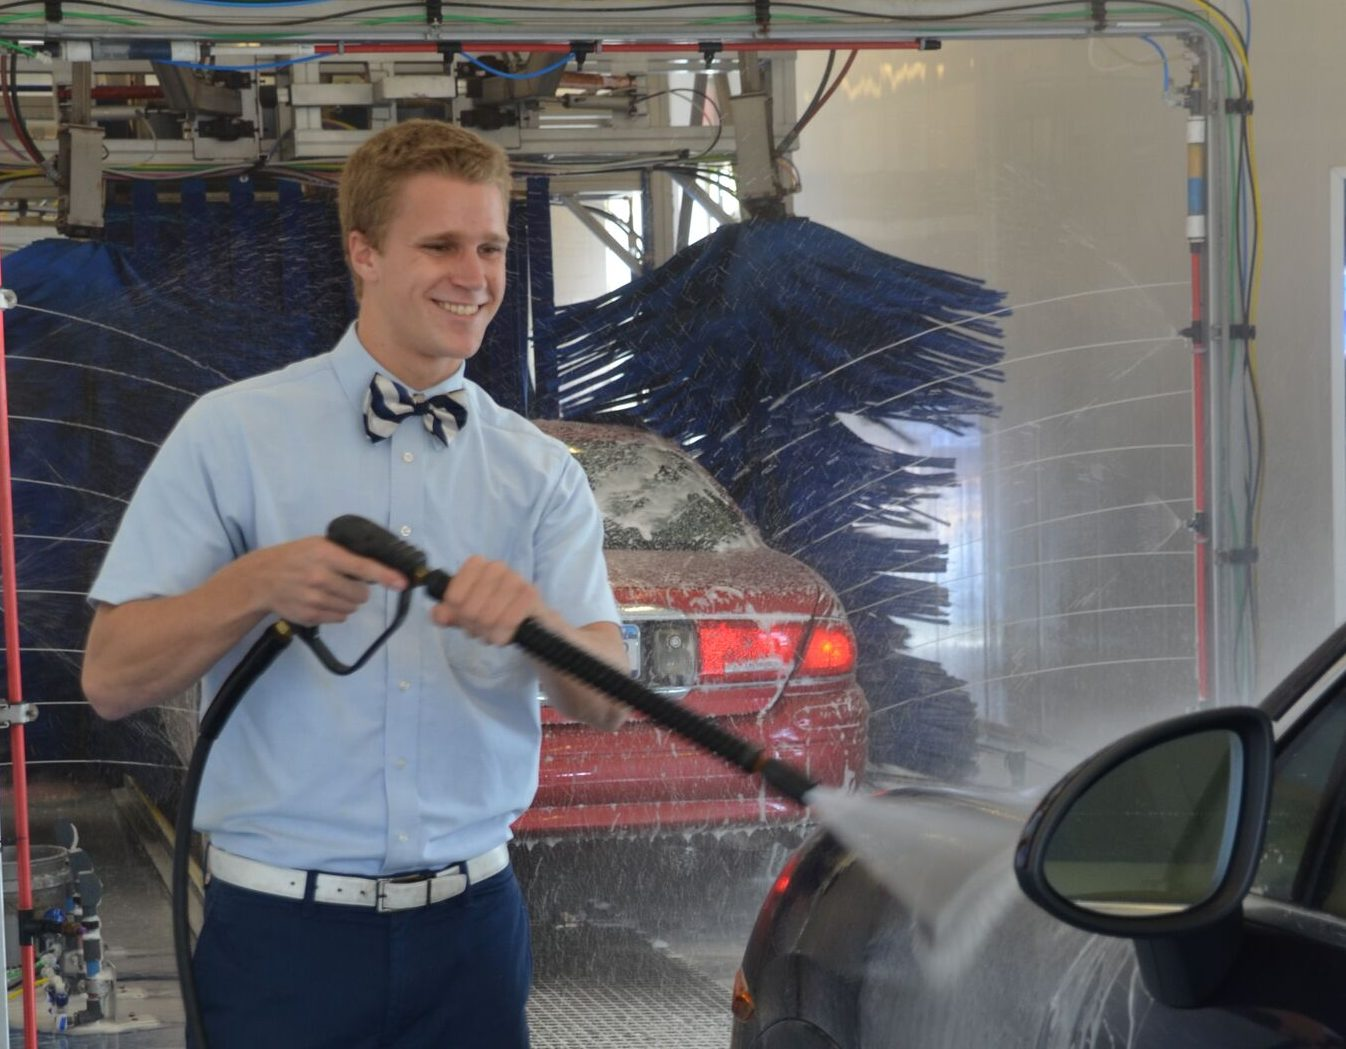 Royal Car Wash opens with unlimited free washes